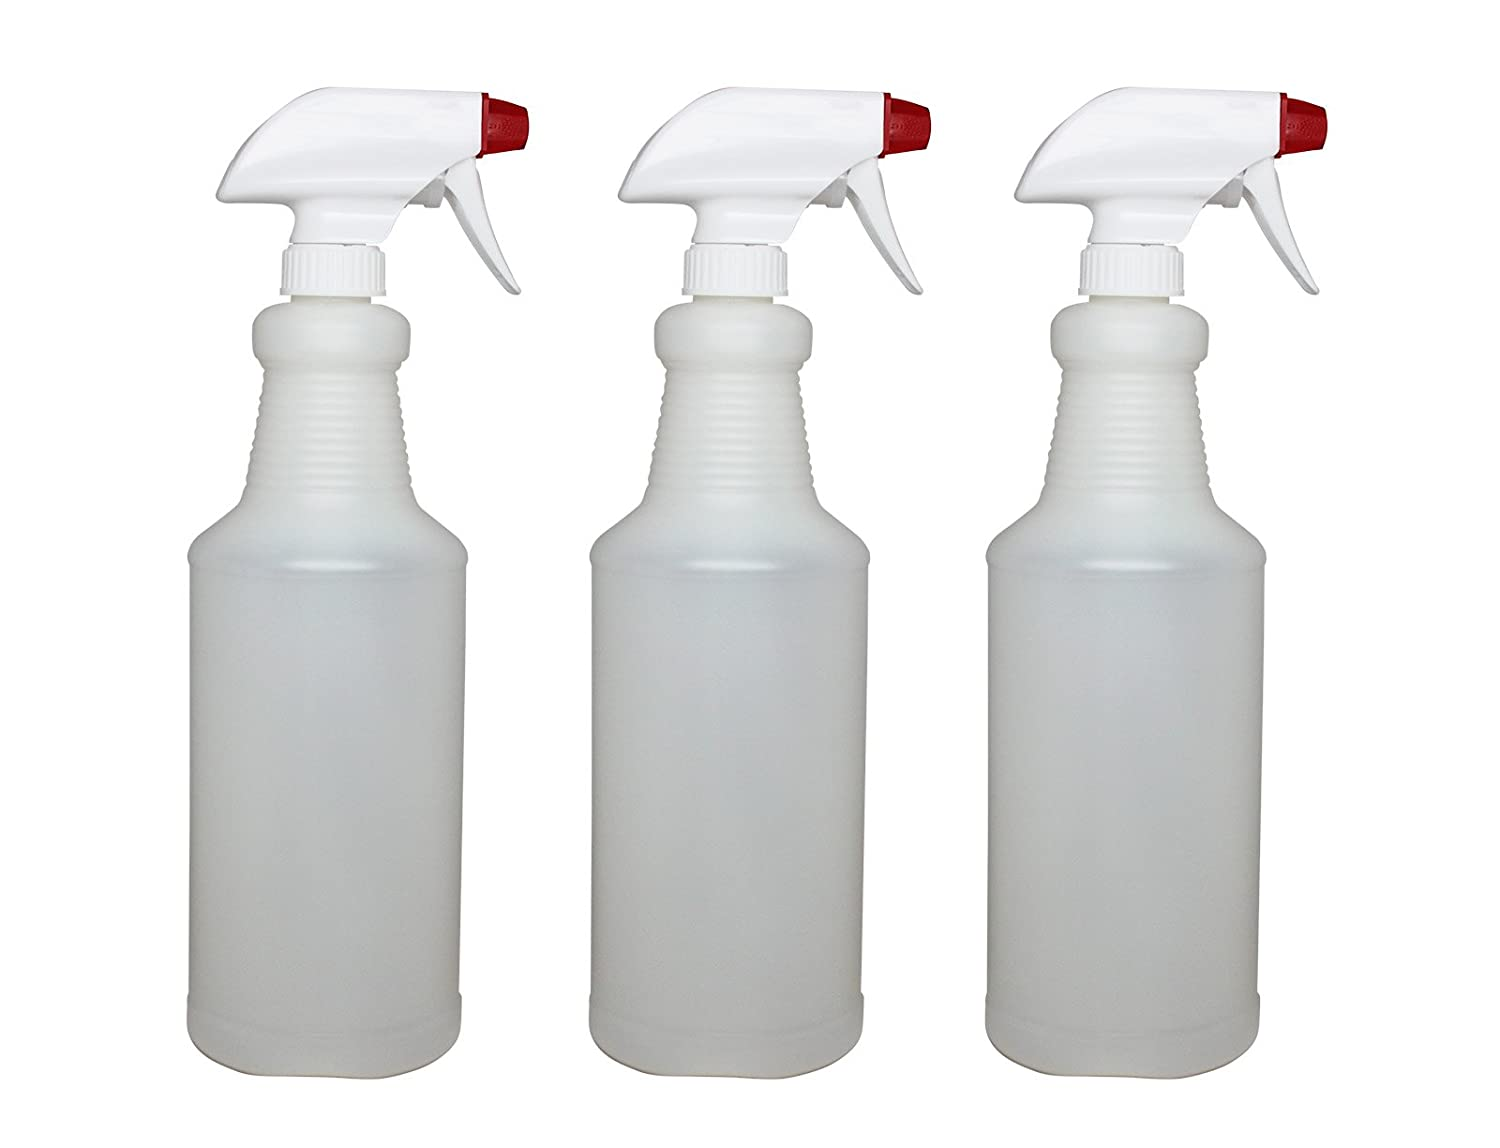 adc8e58bc16f Pinnacle Mercantile Plastic Spray Bottles Leak Proof Technology Empty 32 oz  Pack of 3 Made in USA